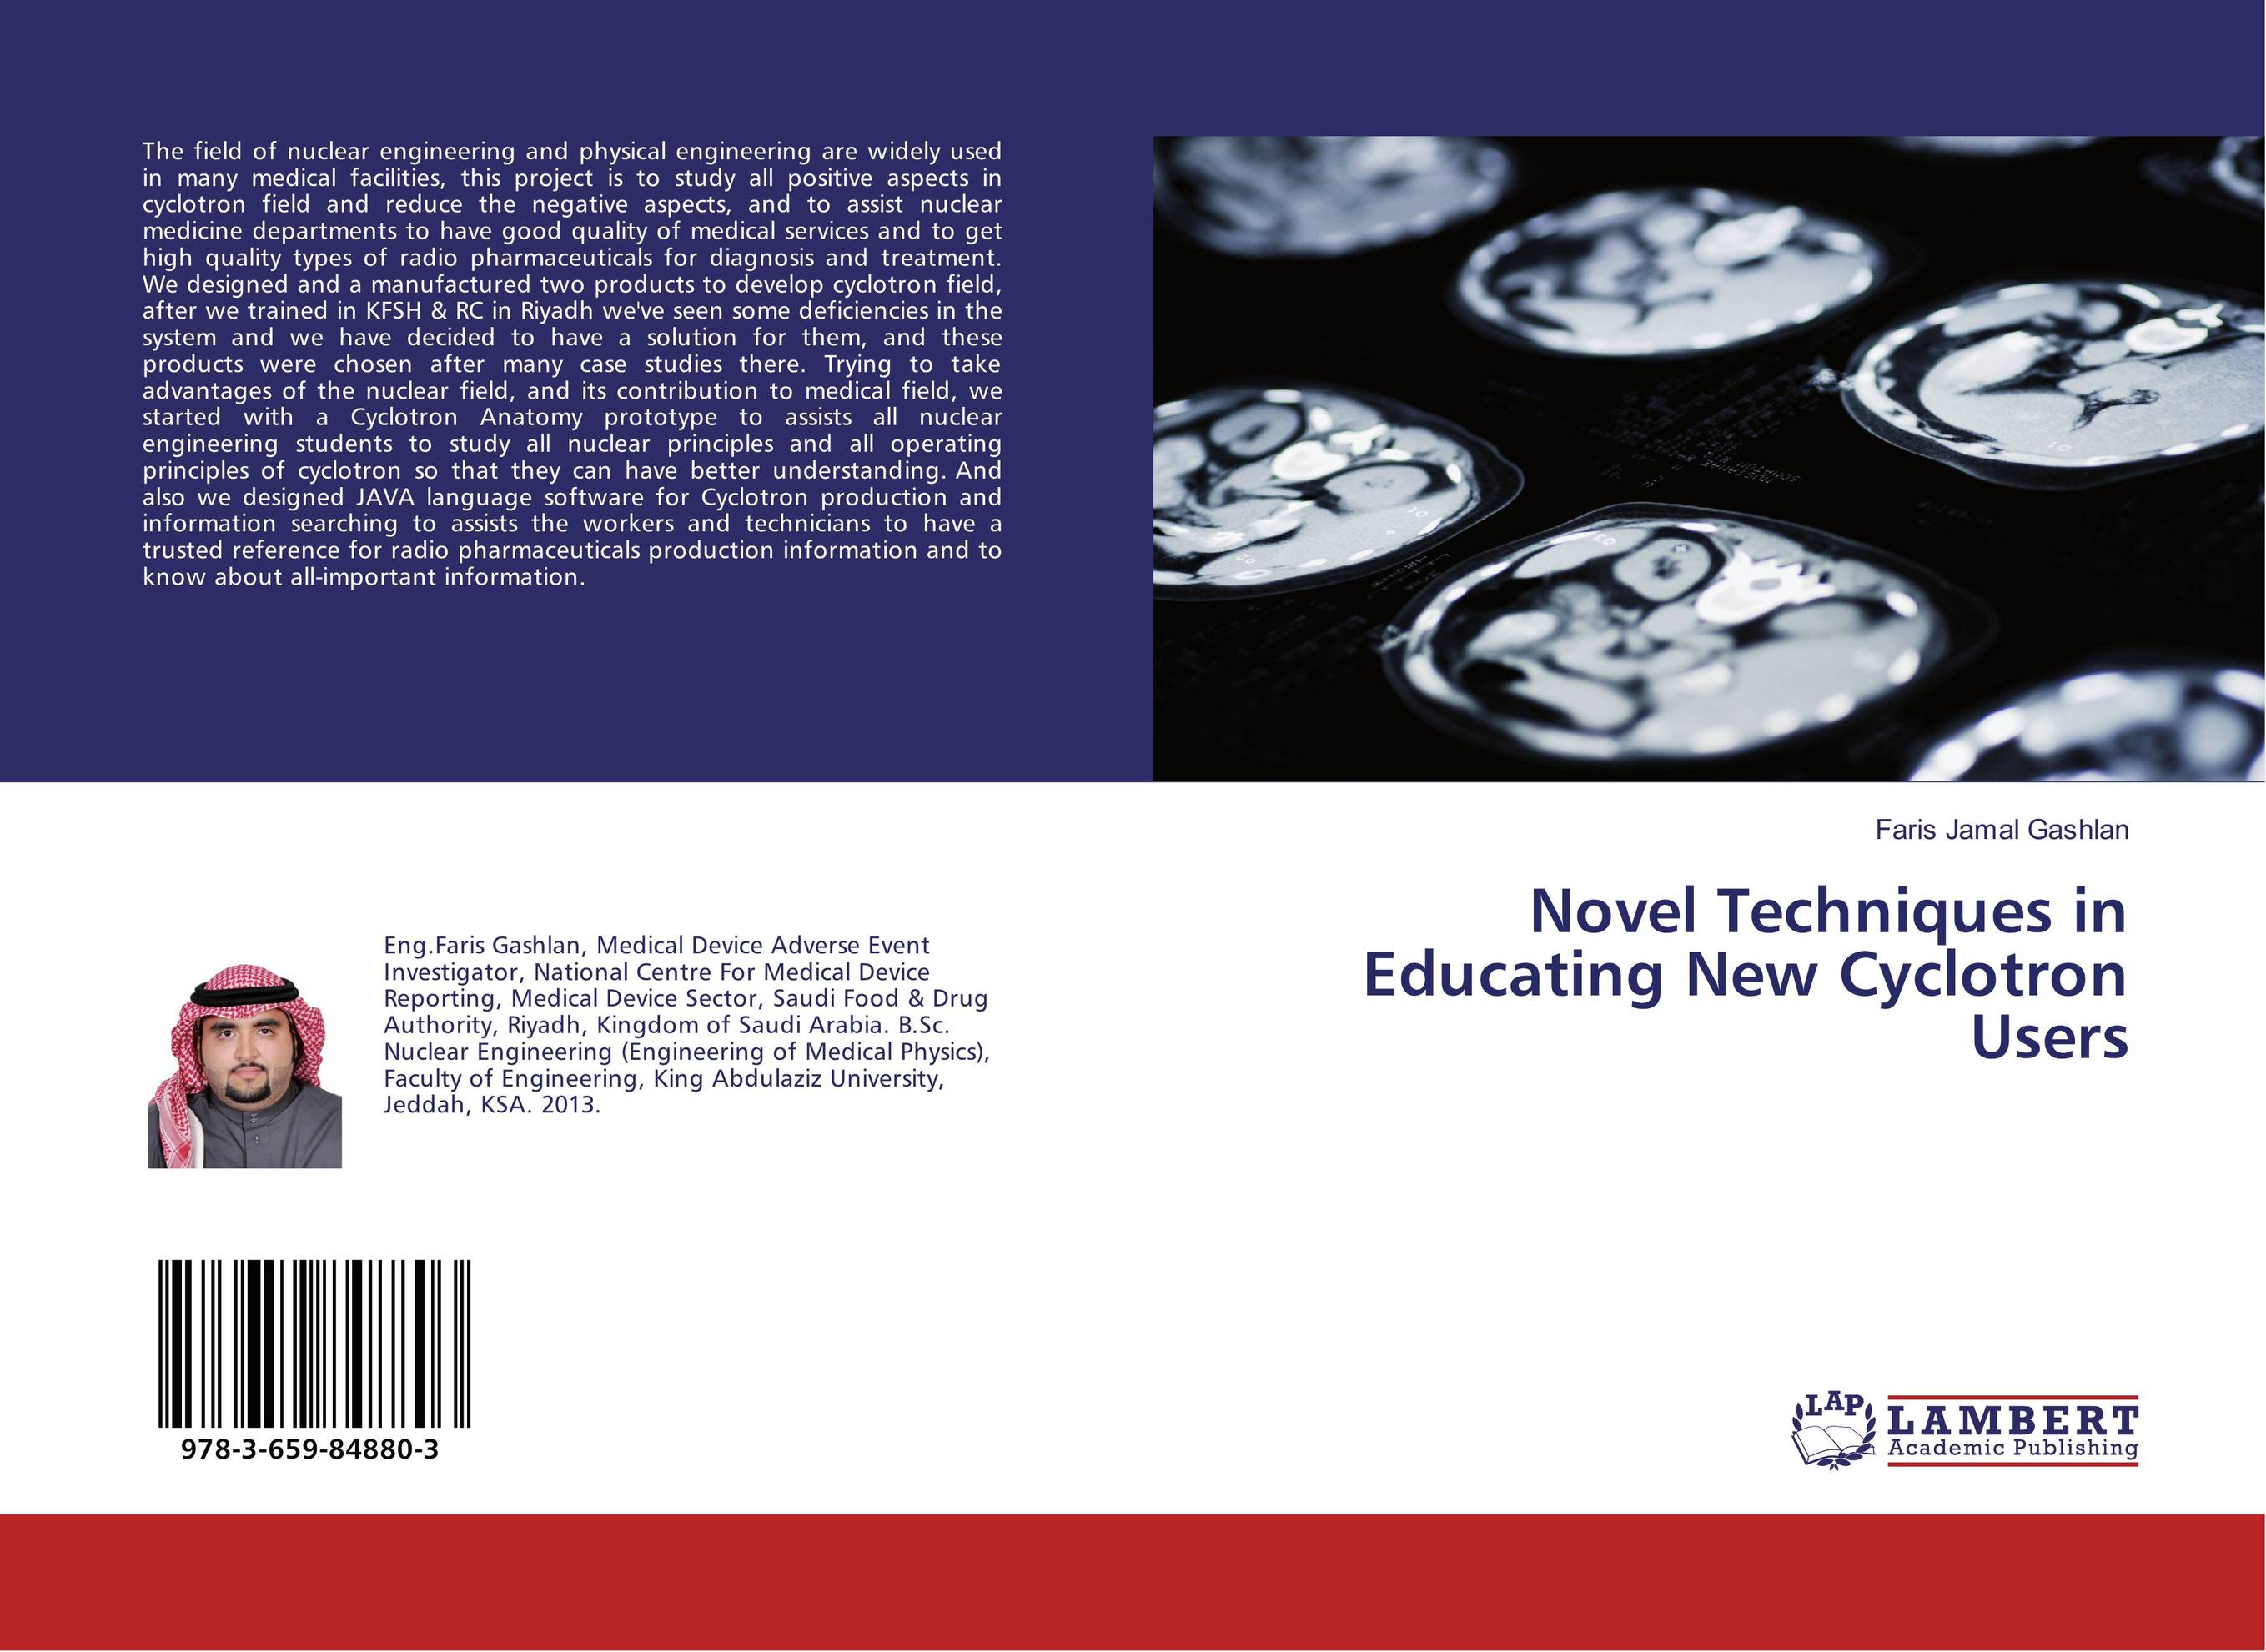 Novel Techniques in Educating New Cyclotron Users the lonely polygamist – a novel